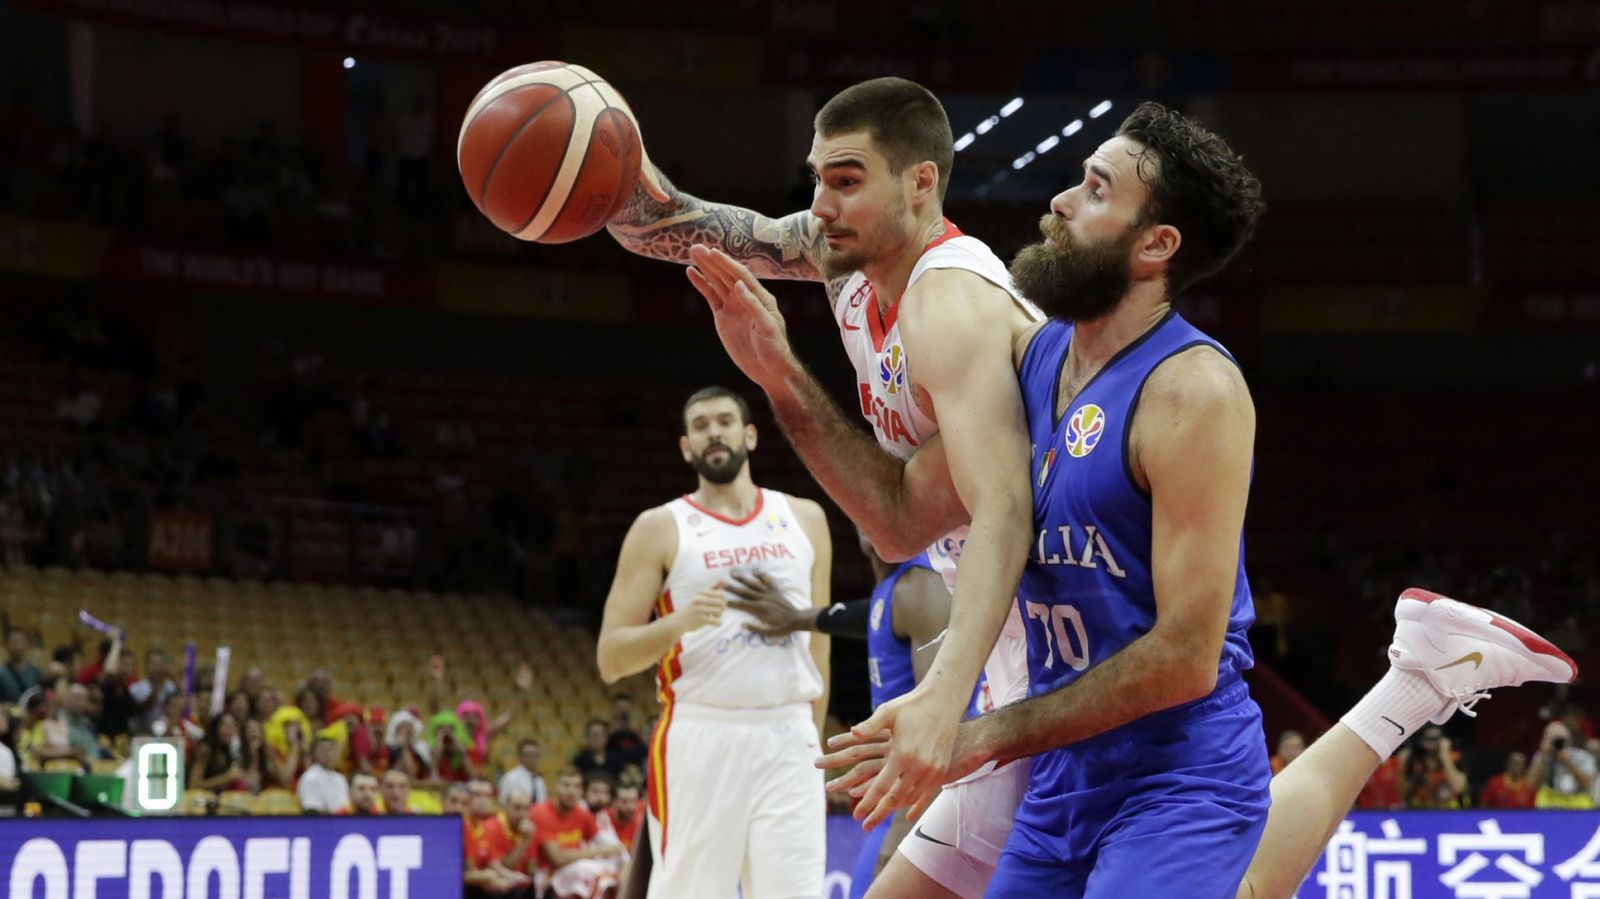 Foto: Basketball - fiba world cup - second round - group j - spain v italy